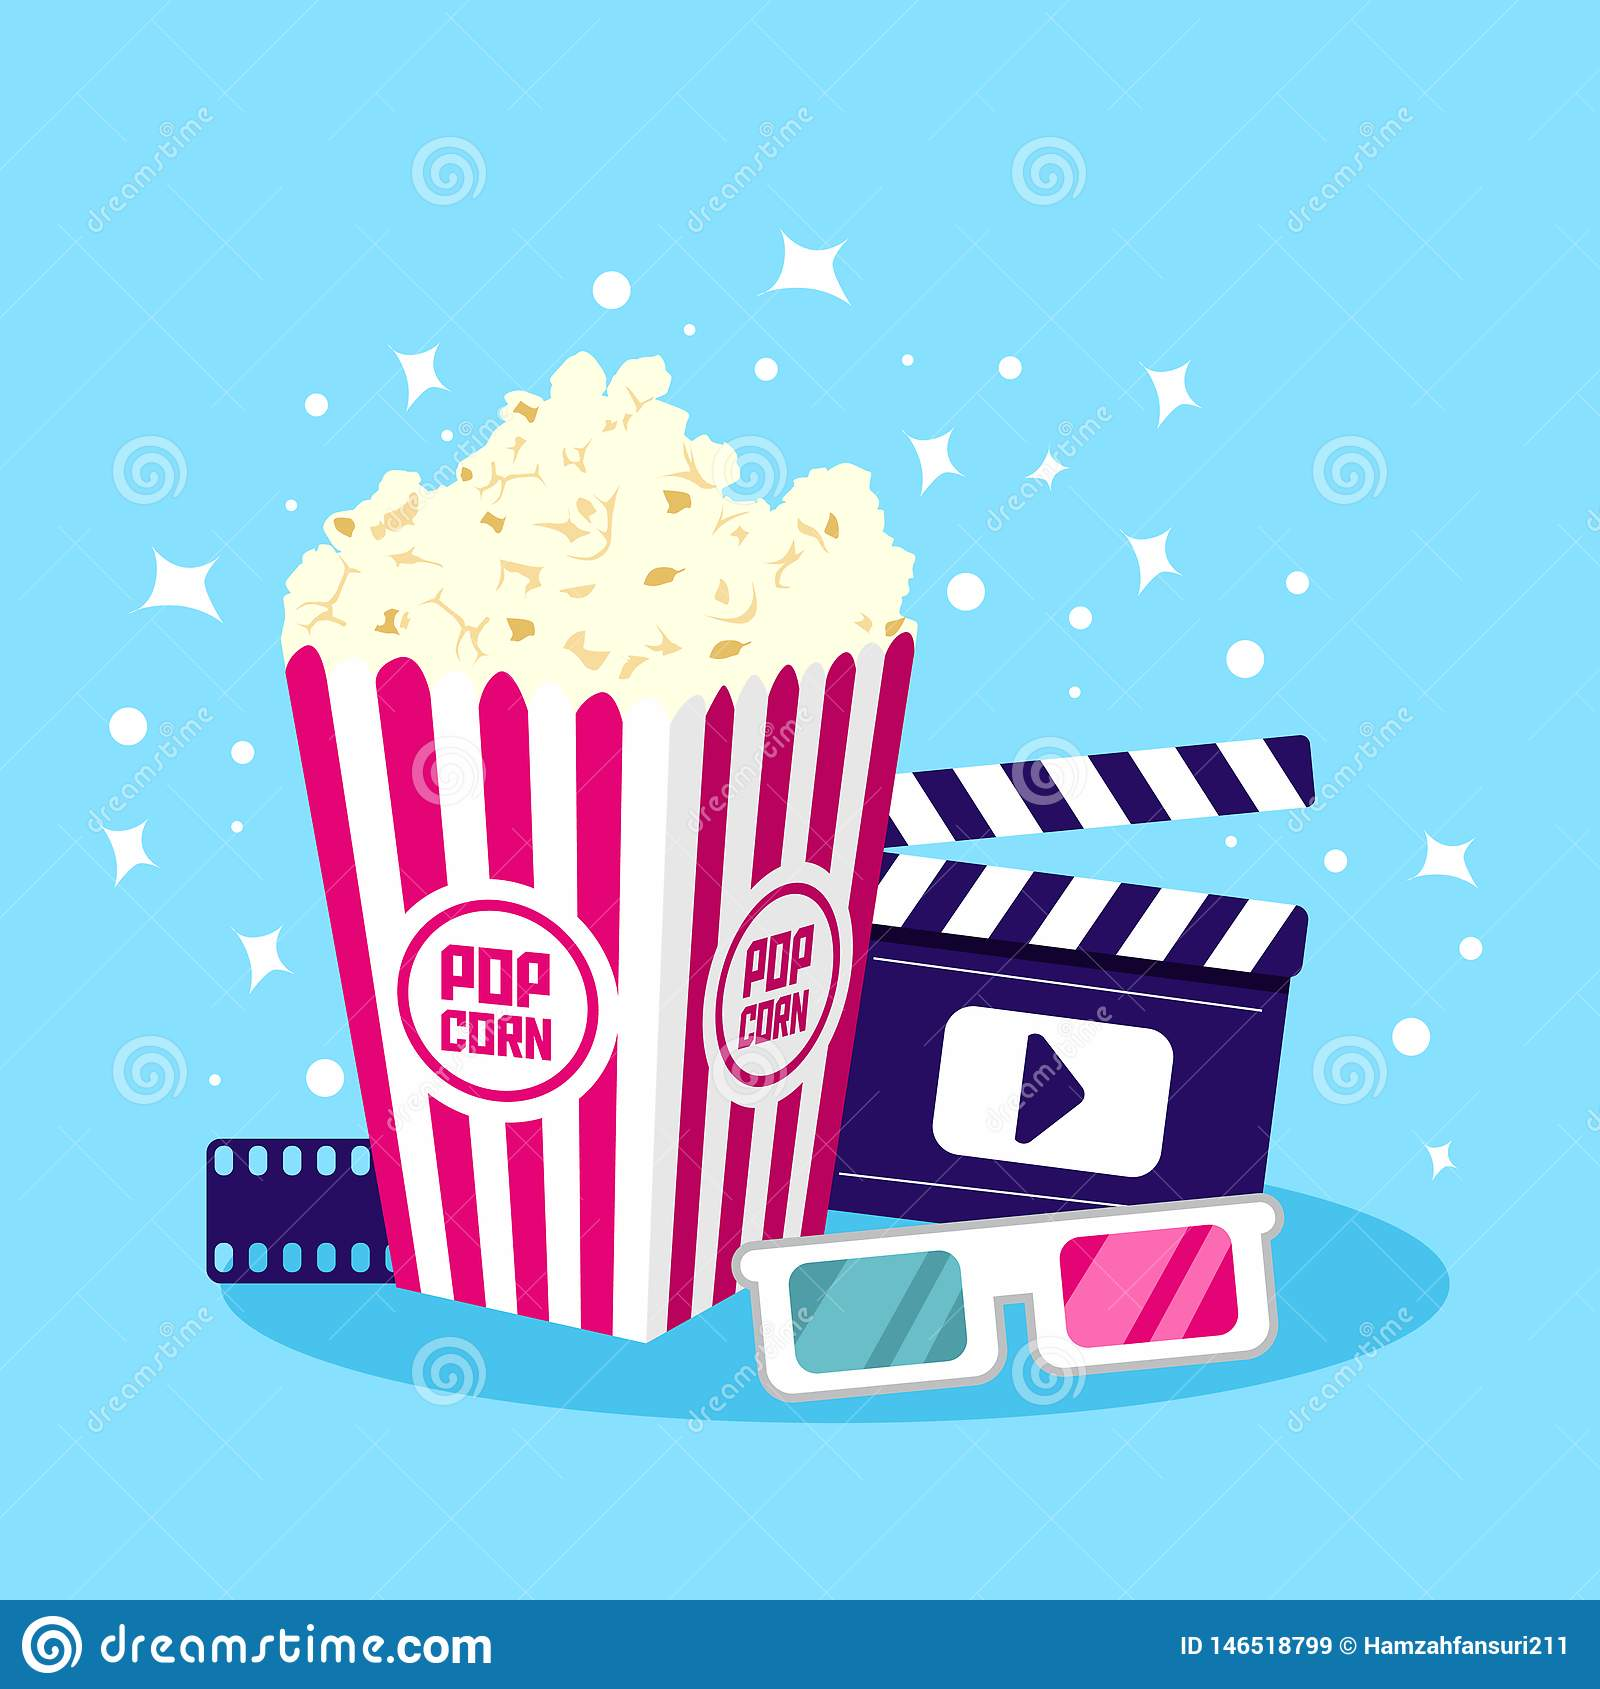 Movie Icon Vector Illustration. Item for Cinema and Film